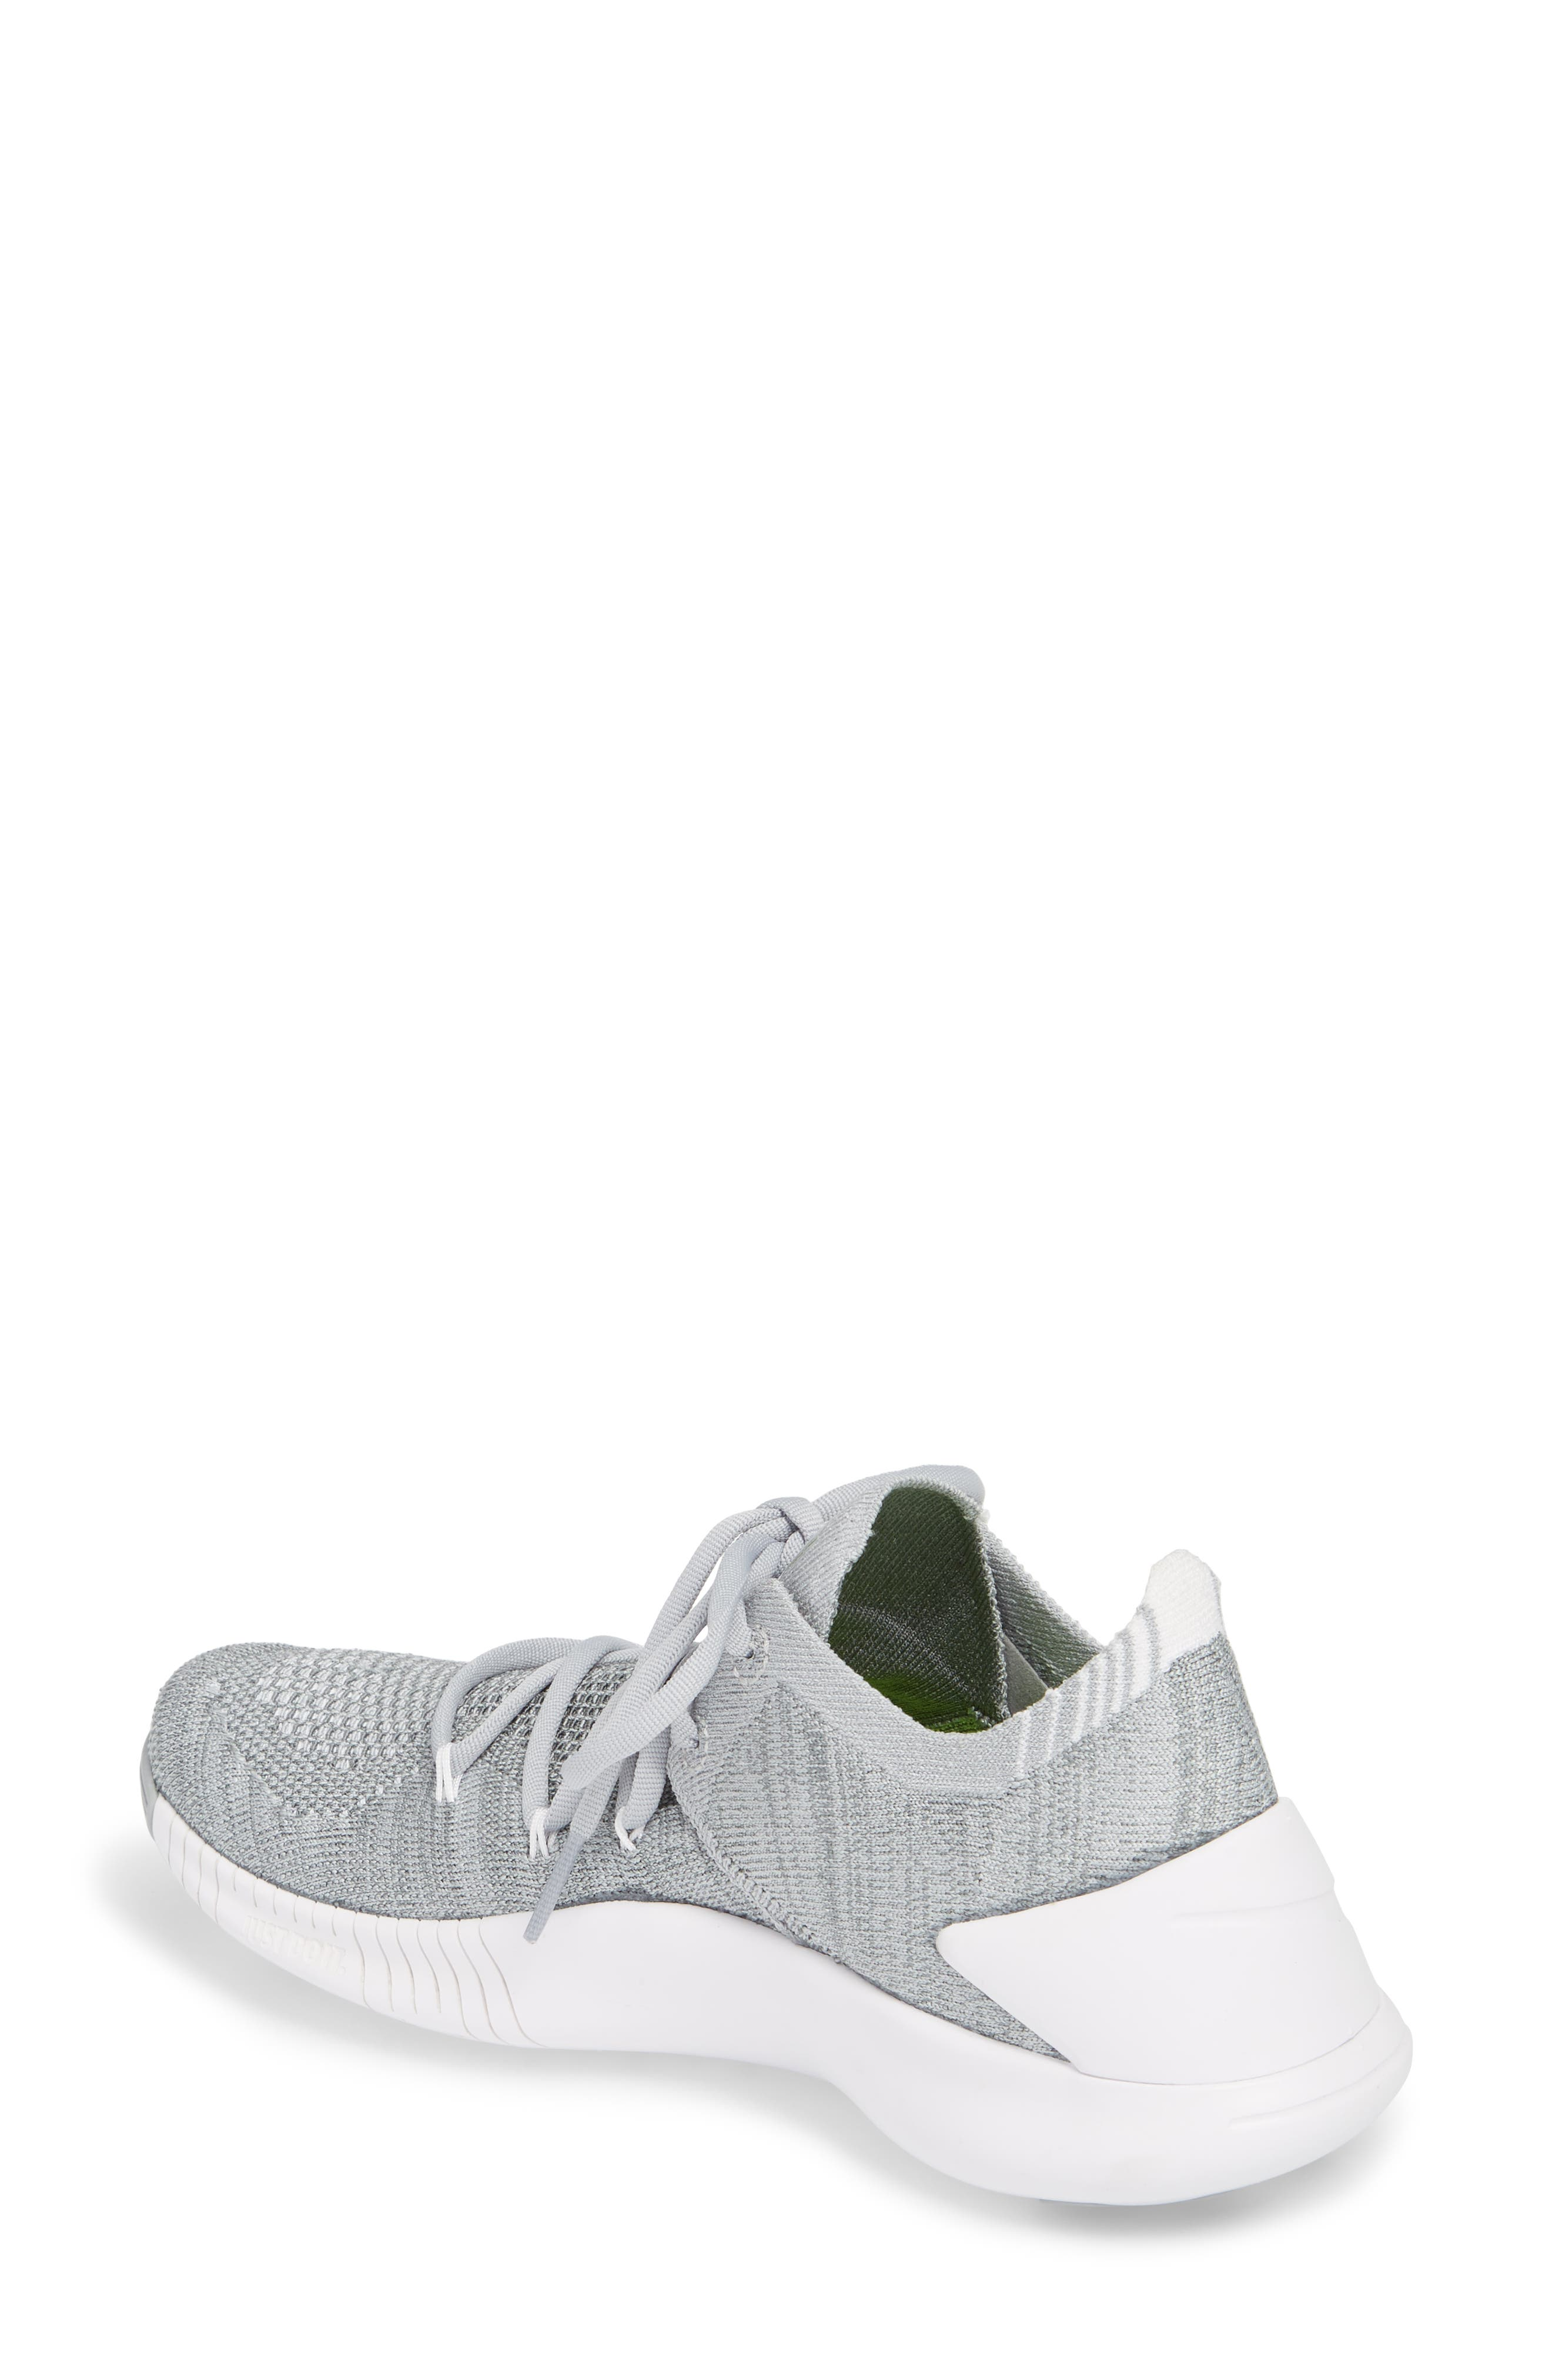 Free TR Flyknit 3 Training Shoe,                             Alternate thumbnail 2, color,                             WOLF GREY/ WHITE